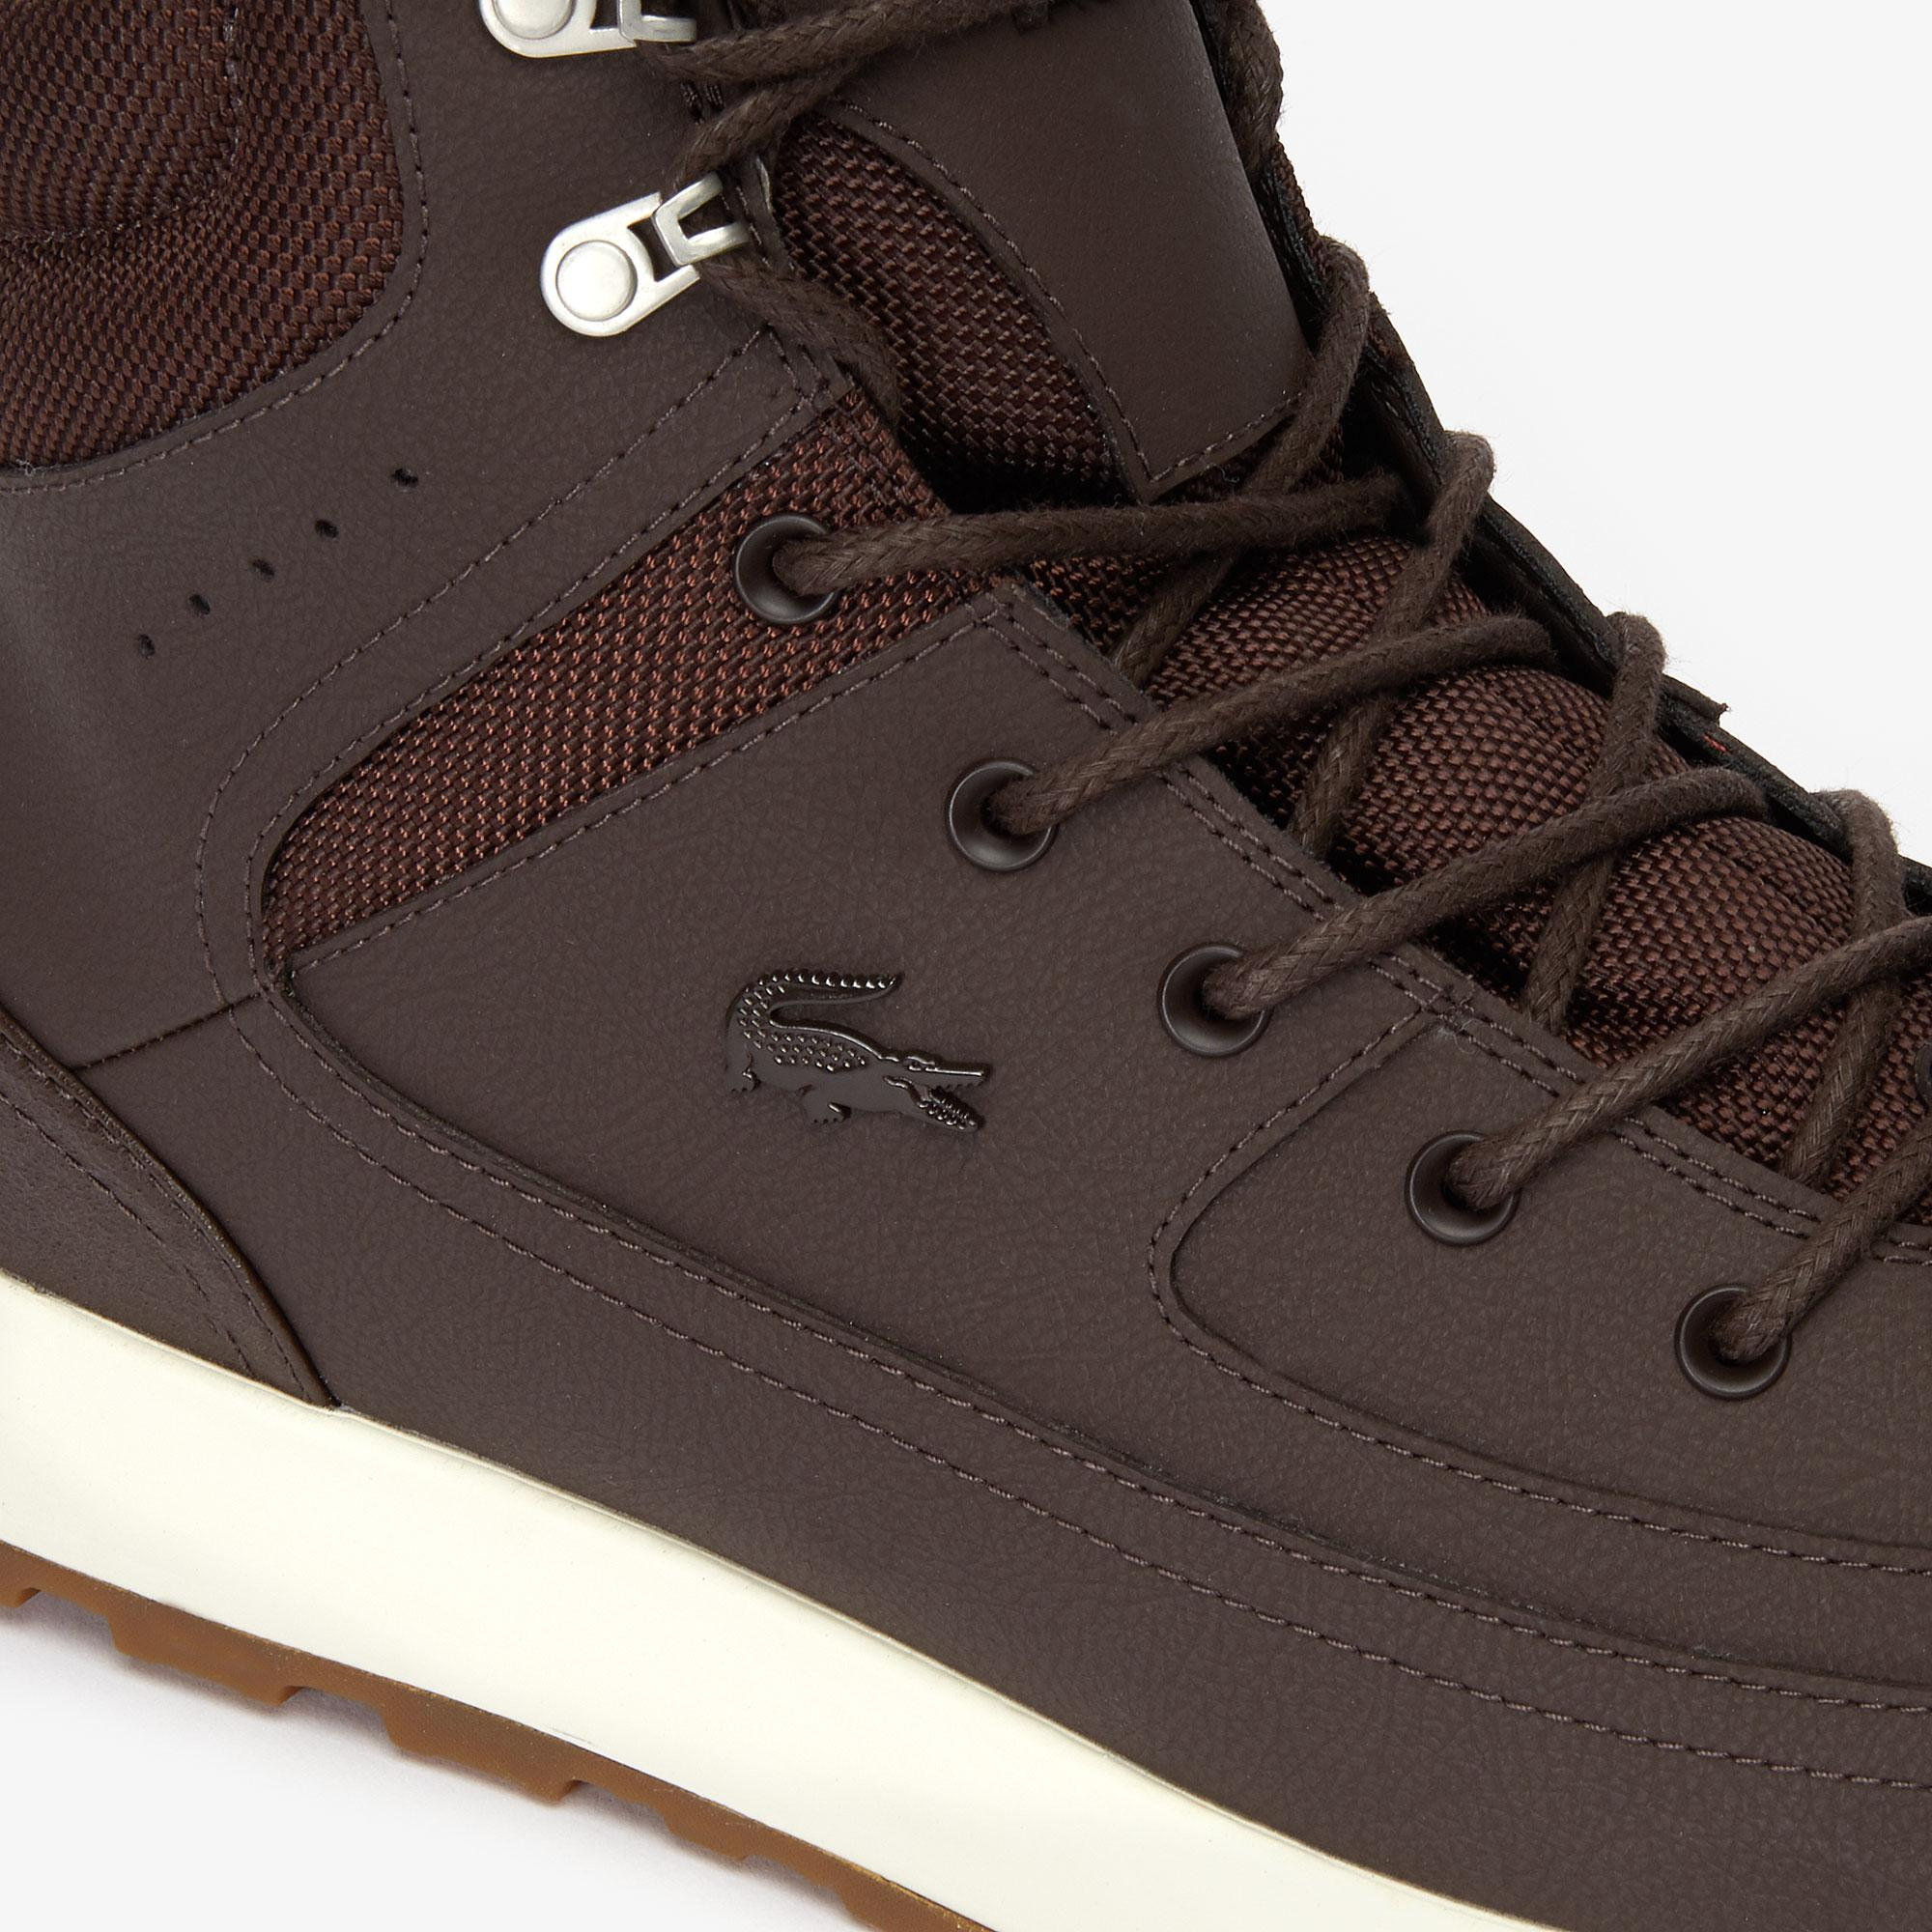 Lacoste Urban Breaker 419 Men's Boot